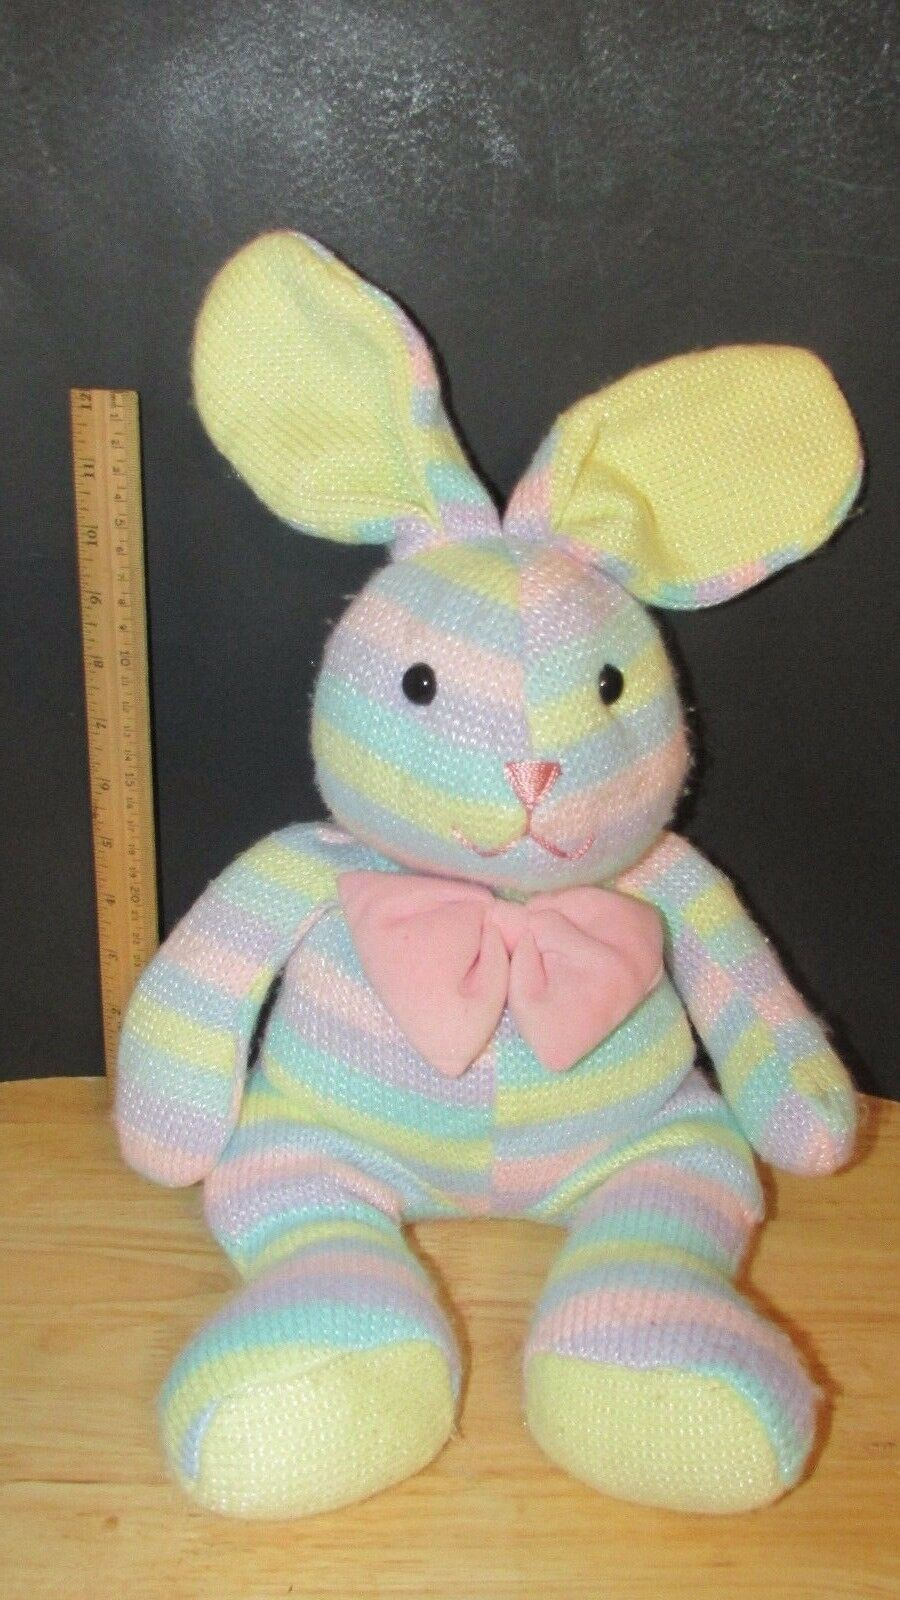 COMMONWEALTH toys Bunny Rabbit Plush pastel striped sweater bow knit w pink bow sweater 1ed3a5